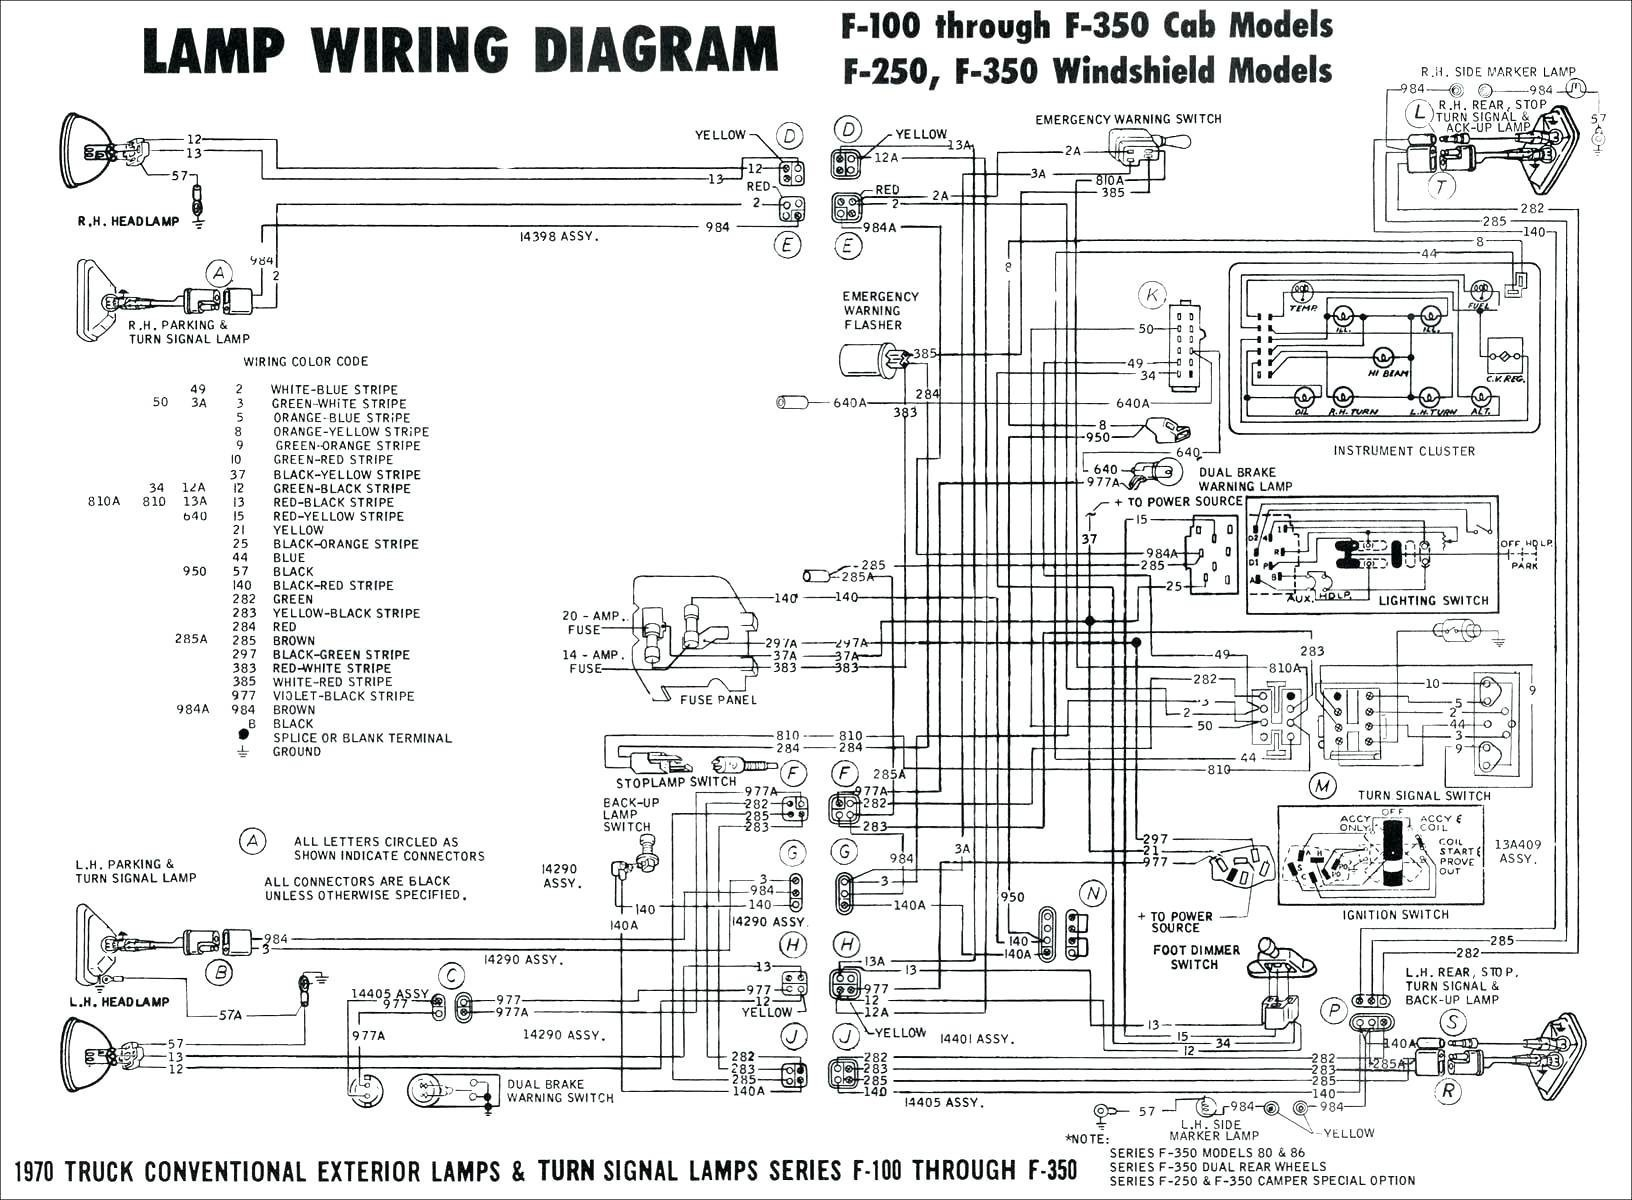 hight resolution of jeep wrangler wiring diagram jeep wrangler wiring diagram 98 jeep grand cherokee